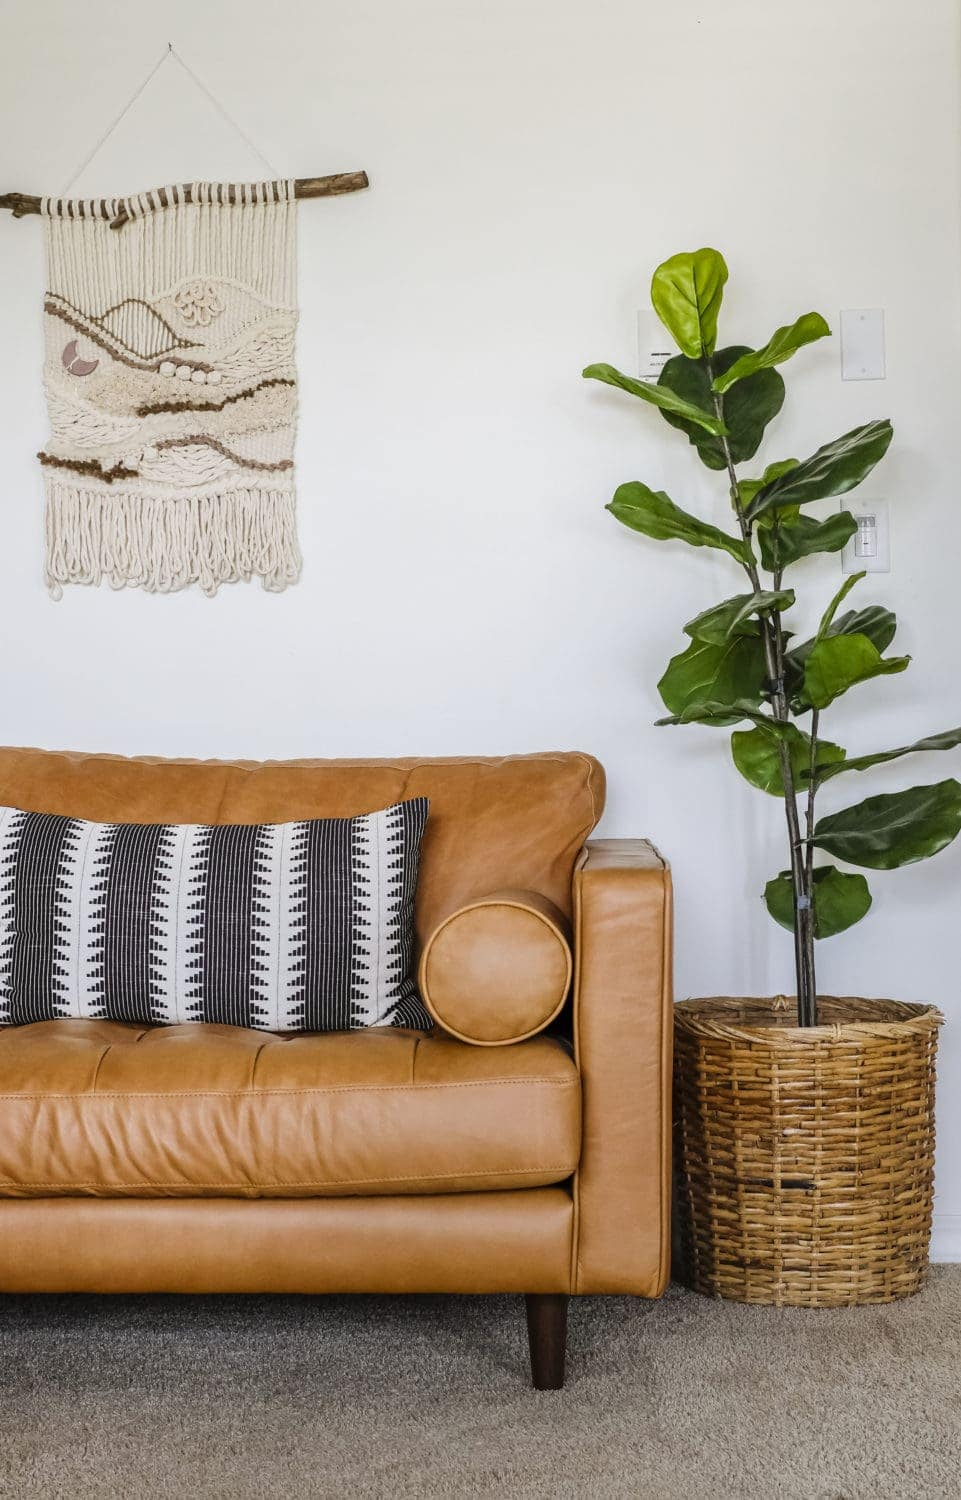 faux fiddle leaf fig tree standing next to a leather couch